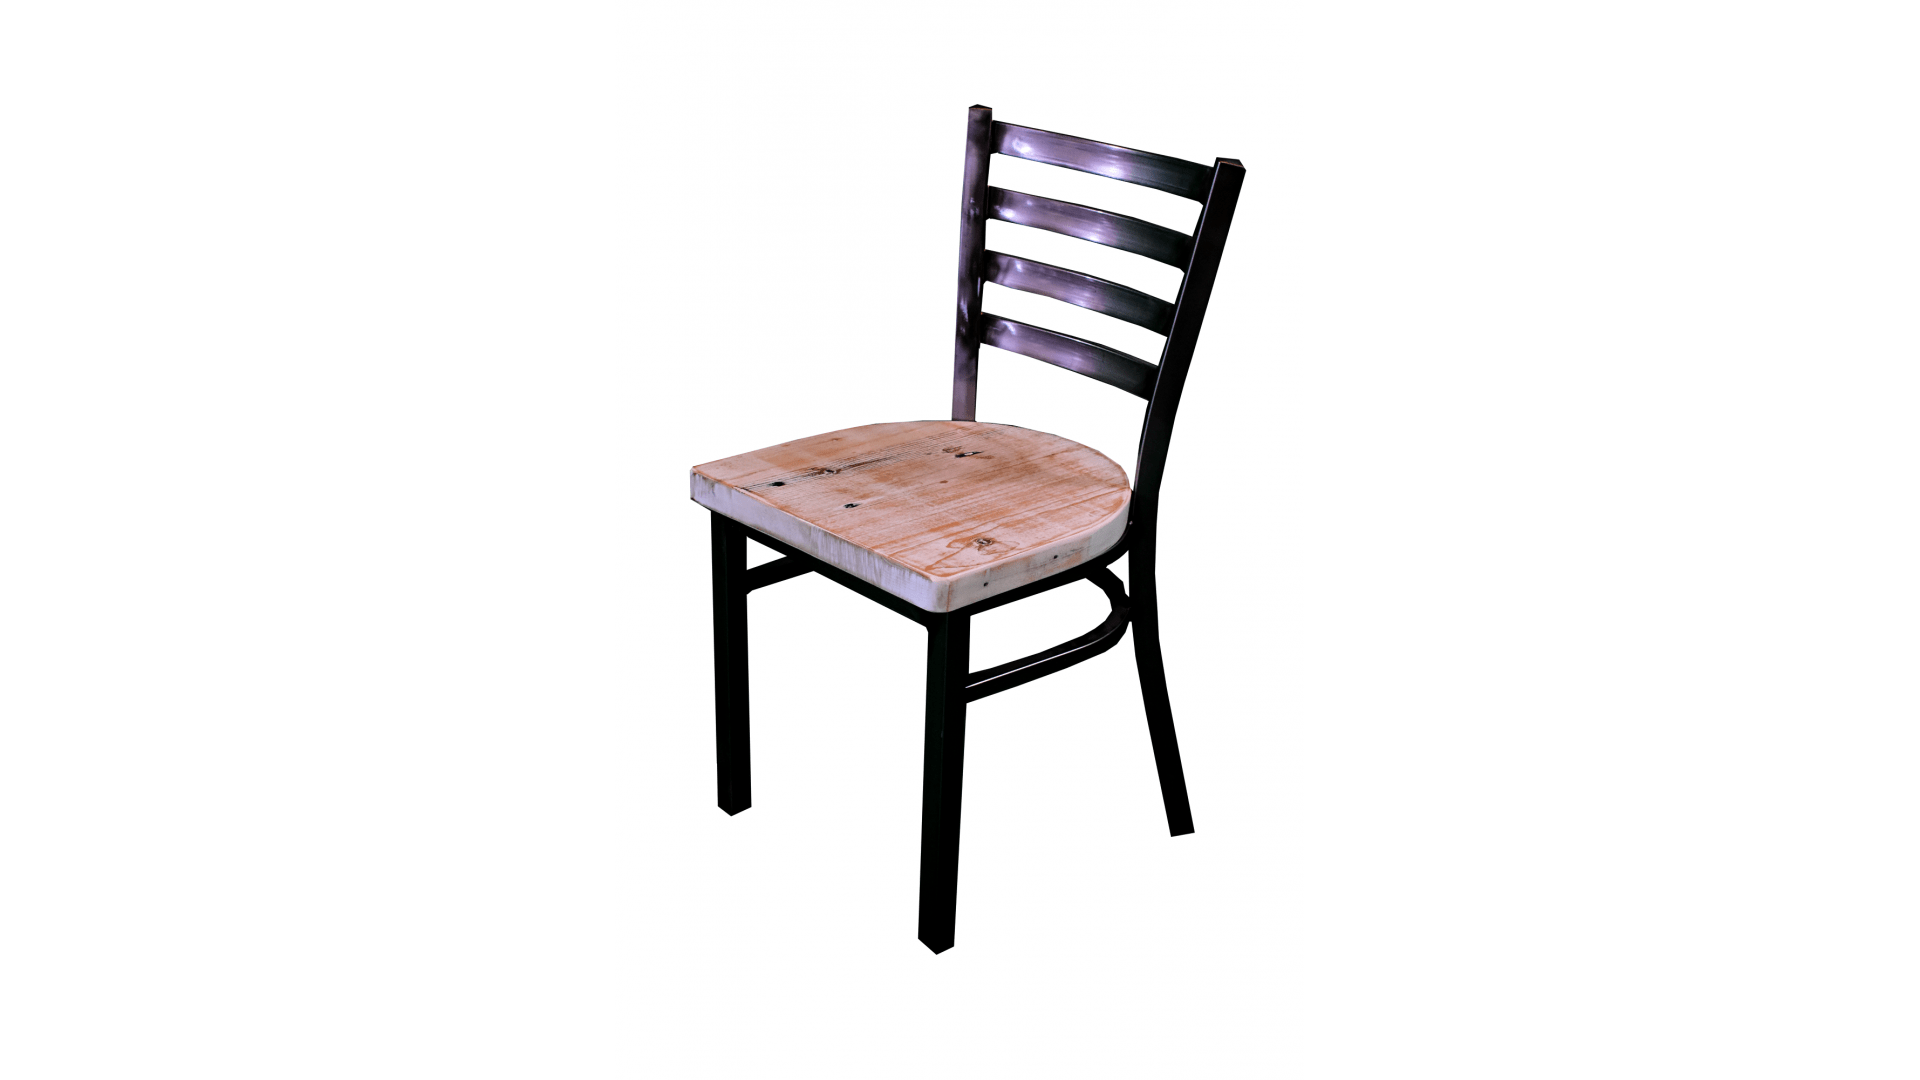 30 Inch Black Ladder Chair Reclaimed Dining Chair Flat